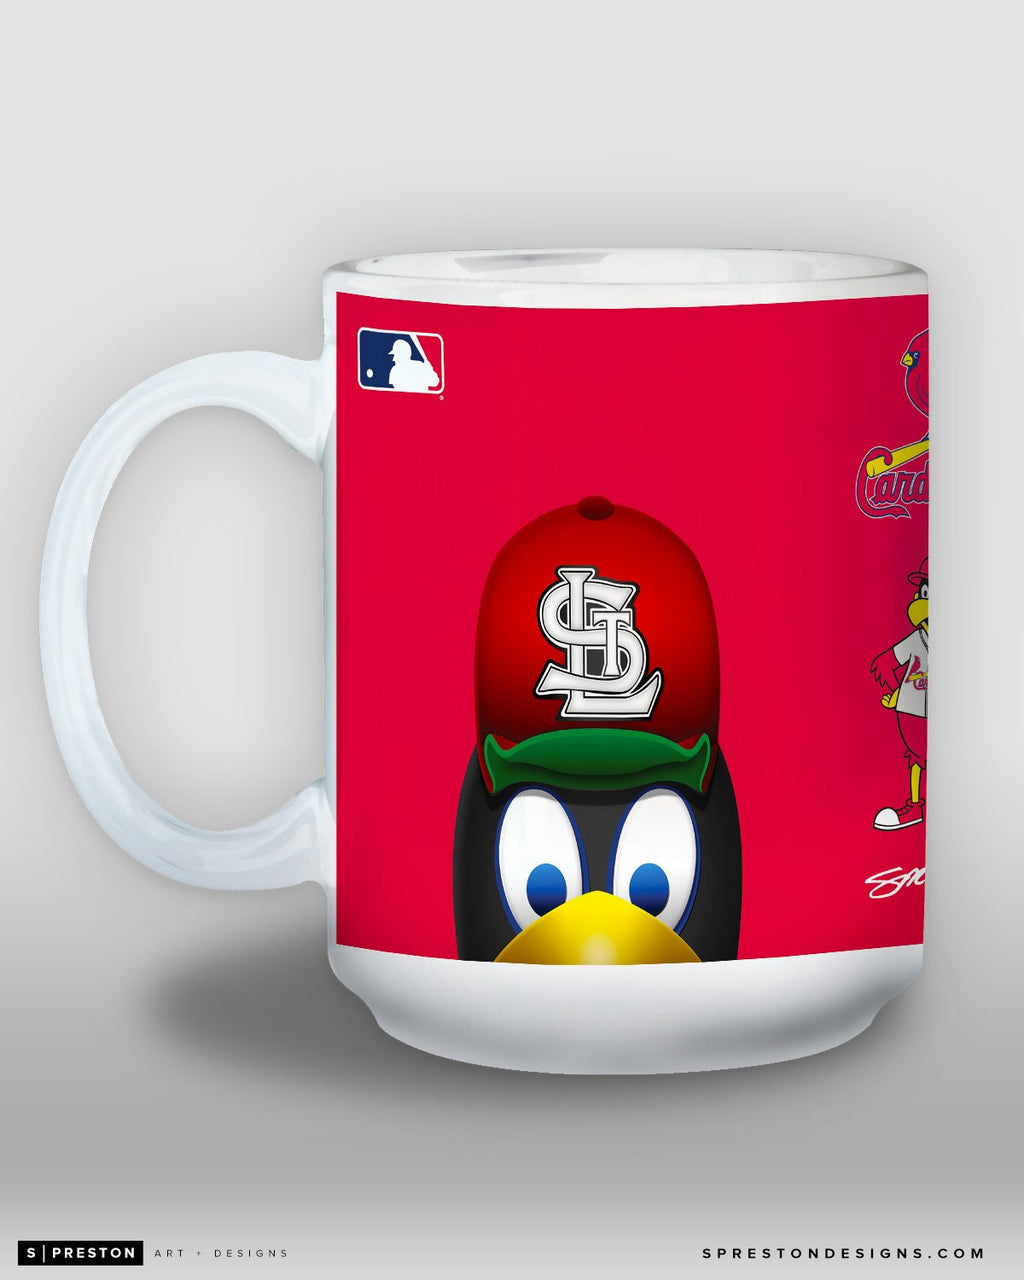 Minimalist Fredbird Coffee Mug - MLB Licensed - St. Louis Cardinals Mascot